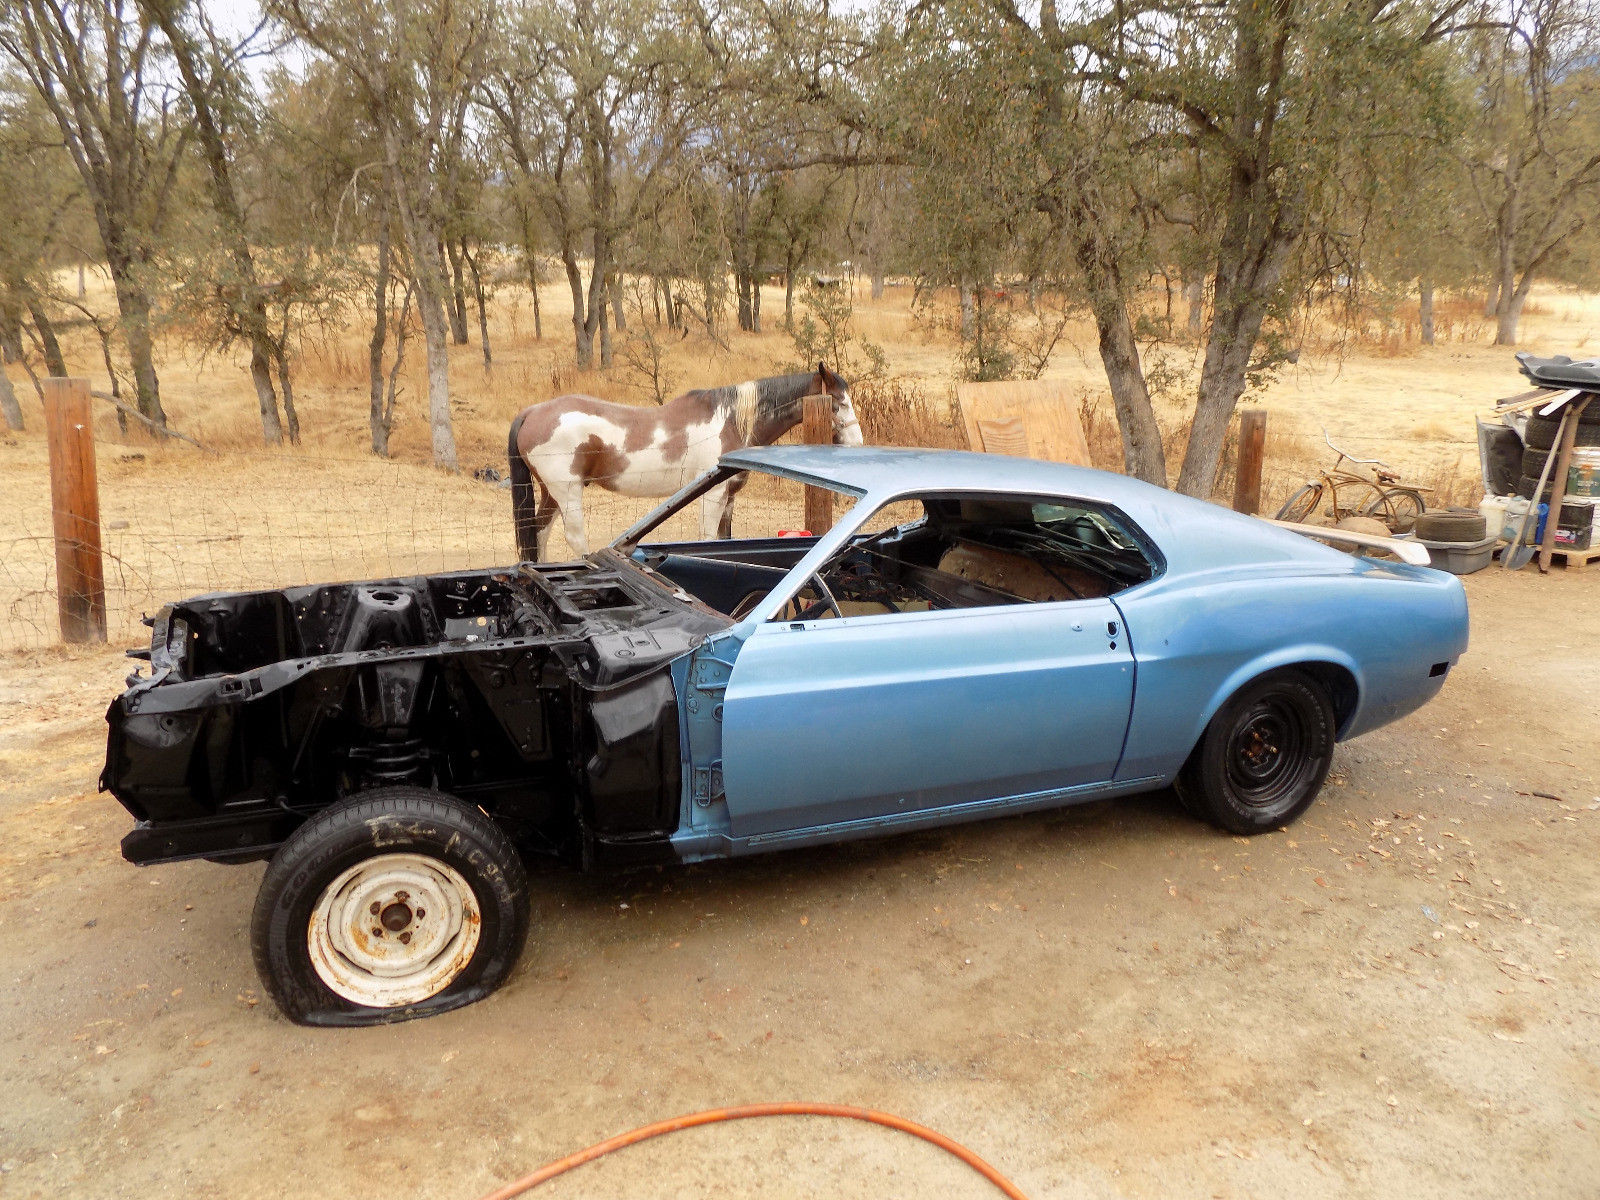 70 Mustang Wiring Harness Starting Know About Diagram 69 Fuse Box Labeled Rust Free 1970 Ford Project For Sale